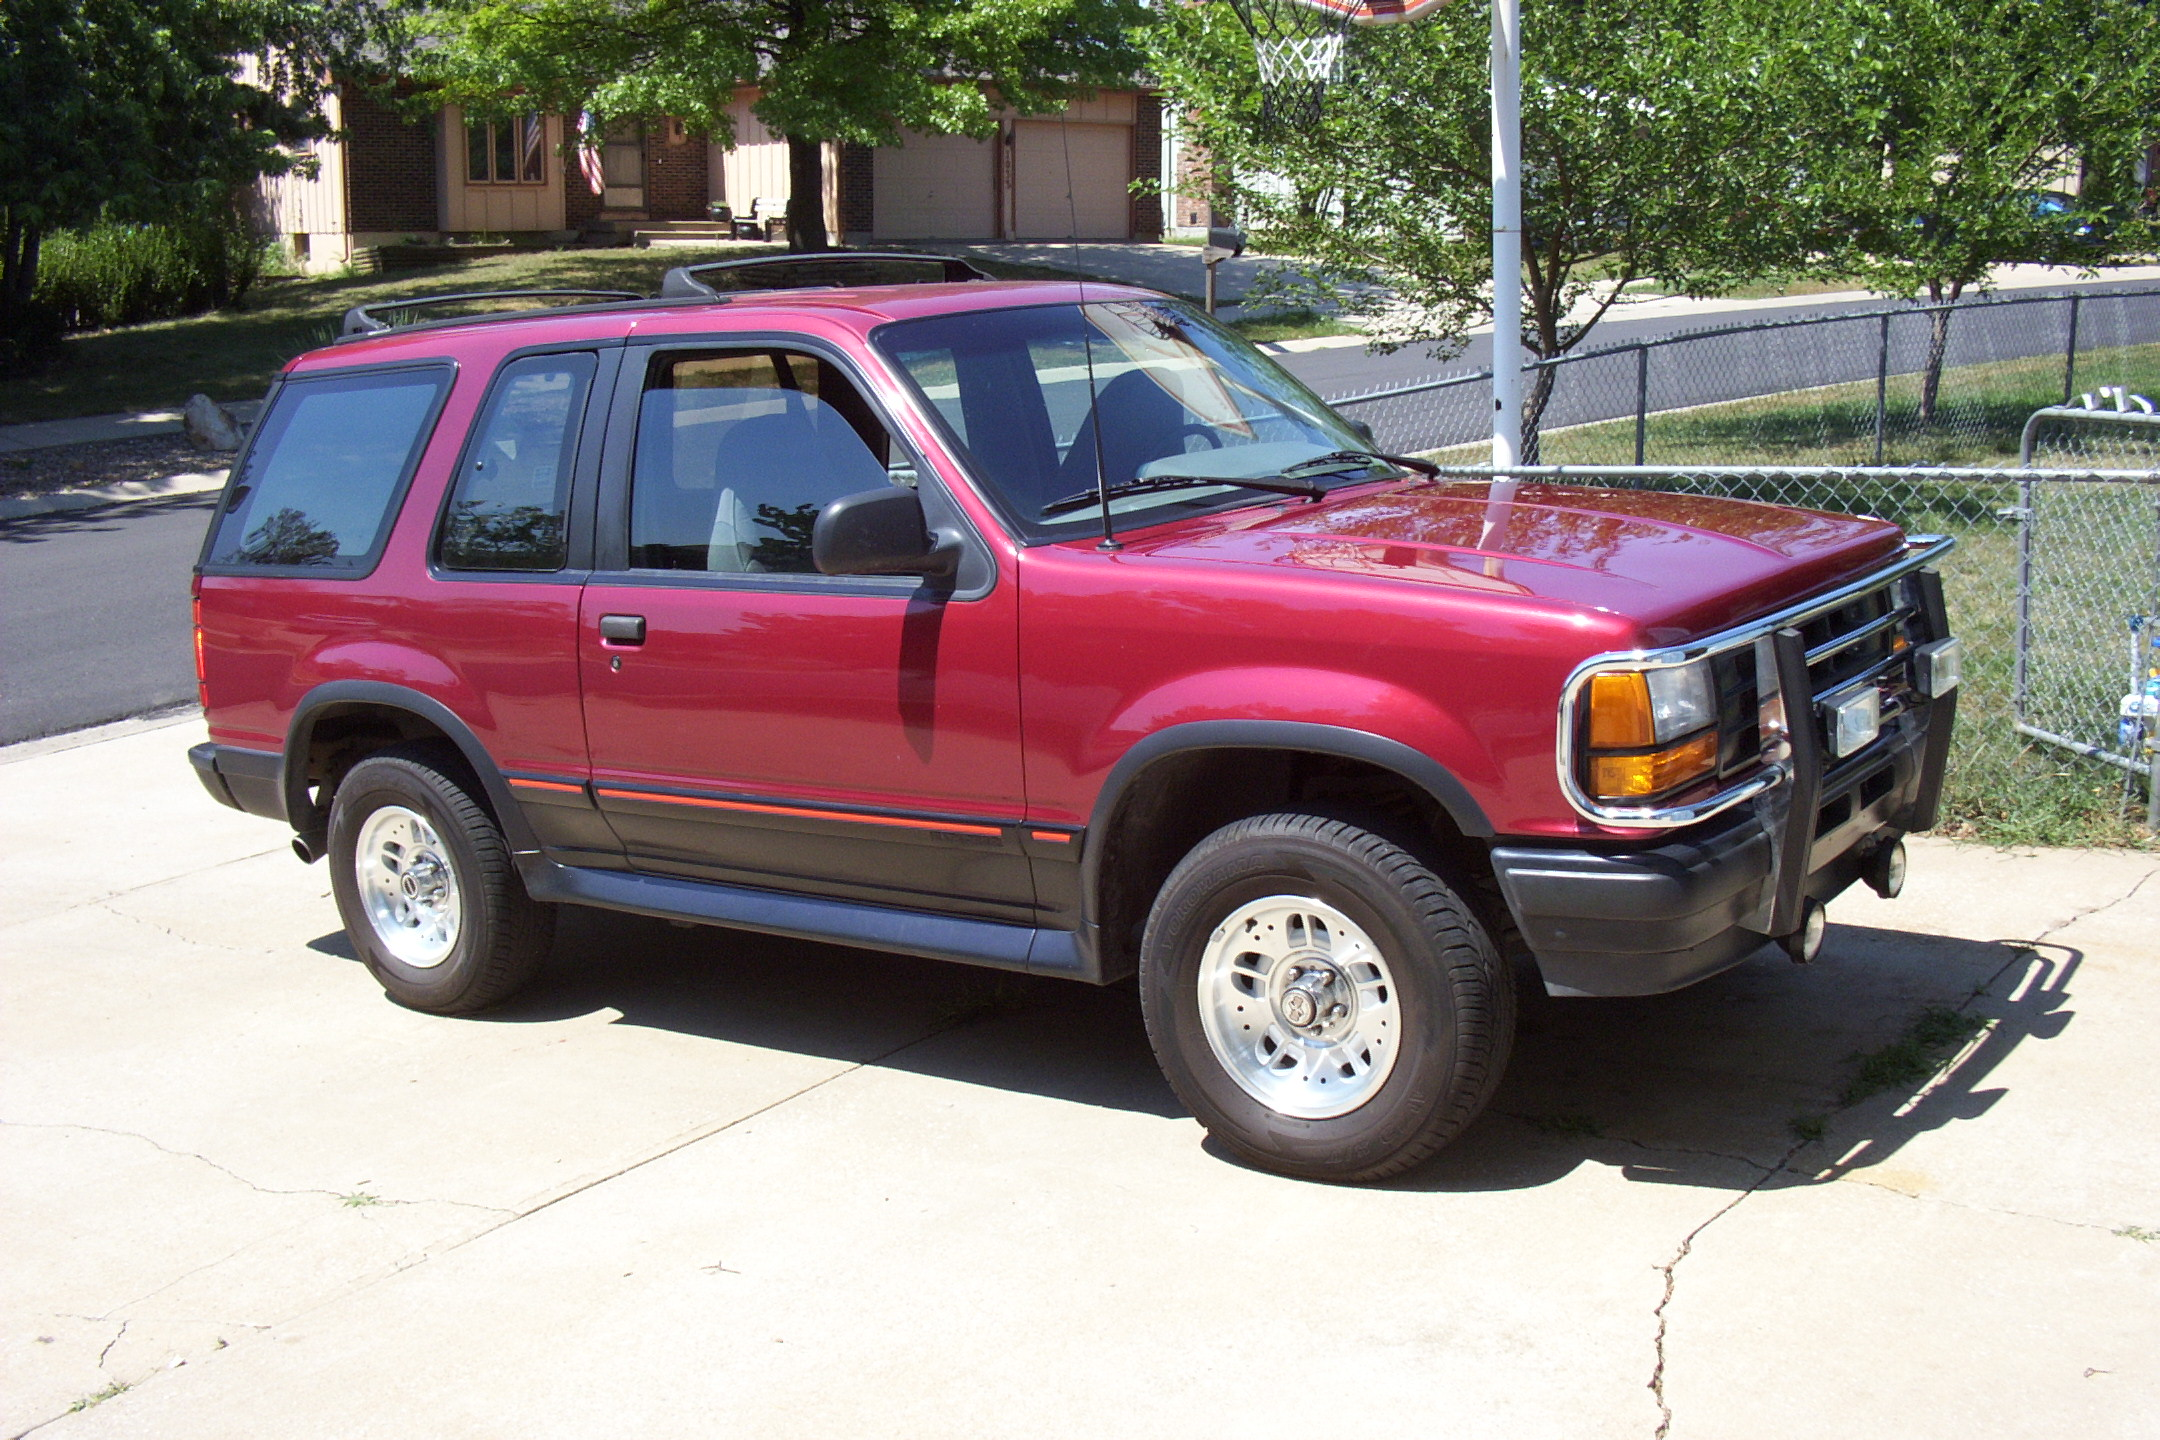 1993 ford explorer image 12